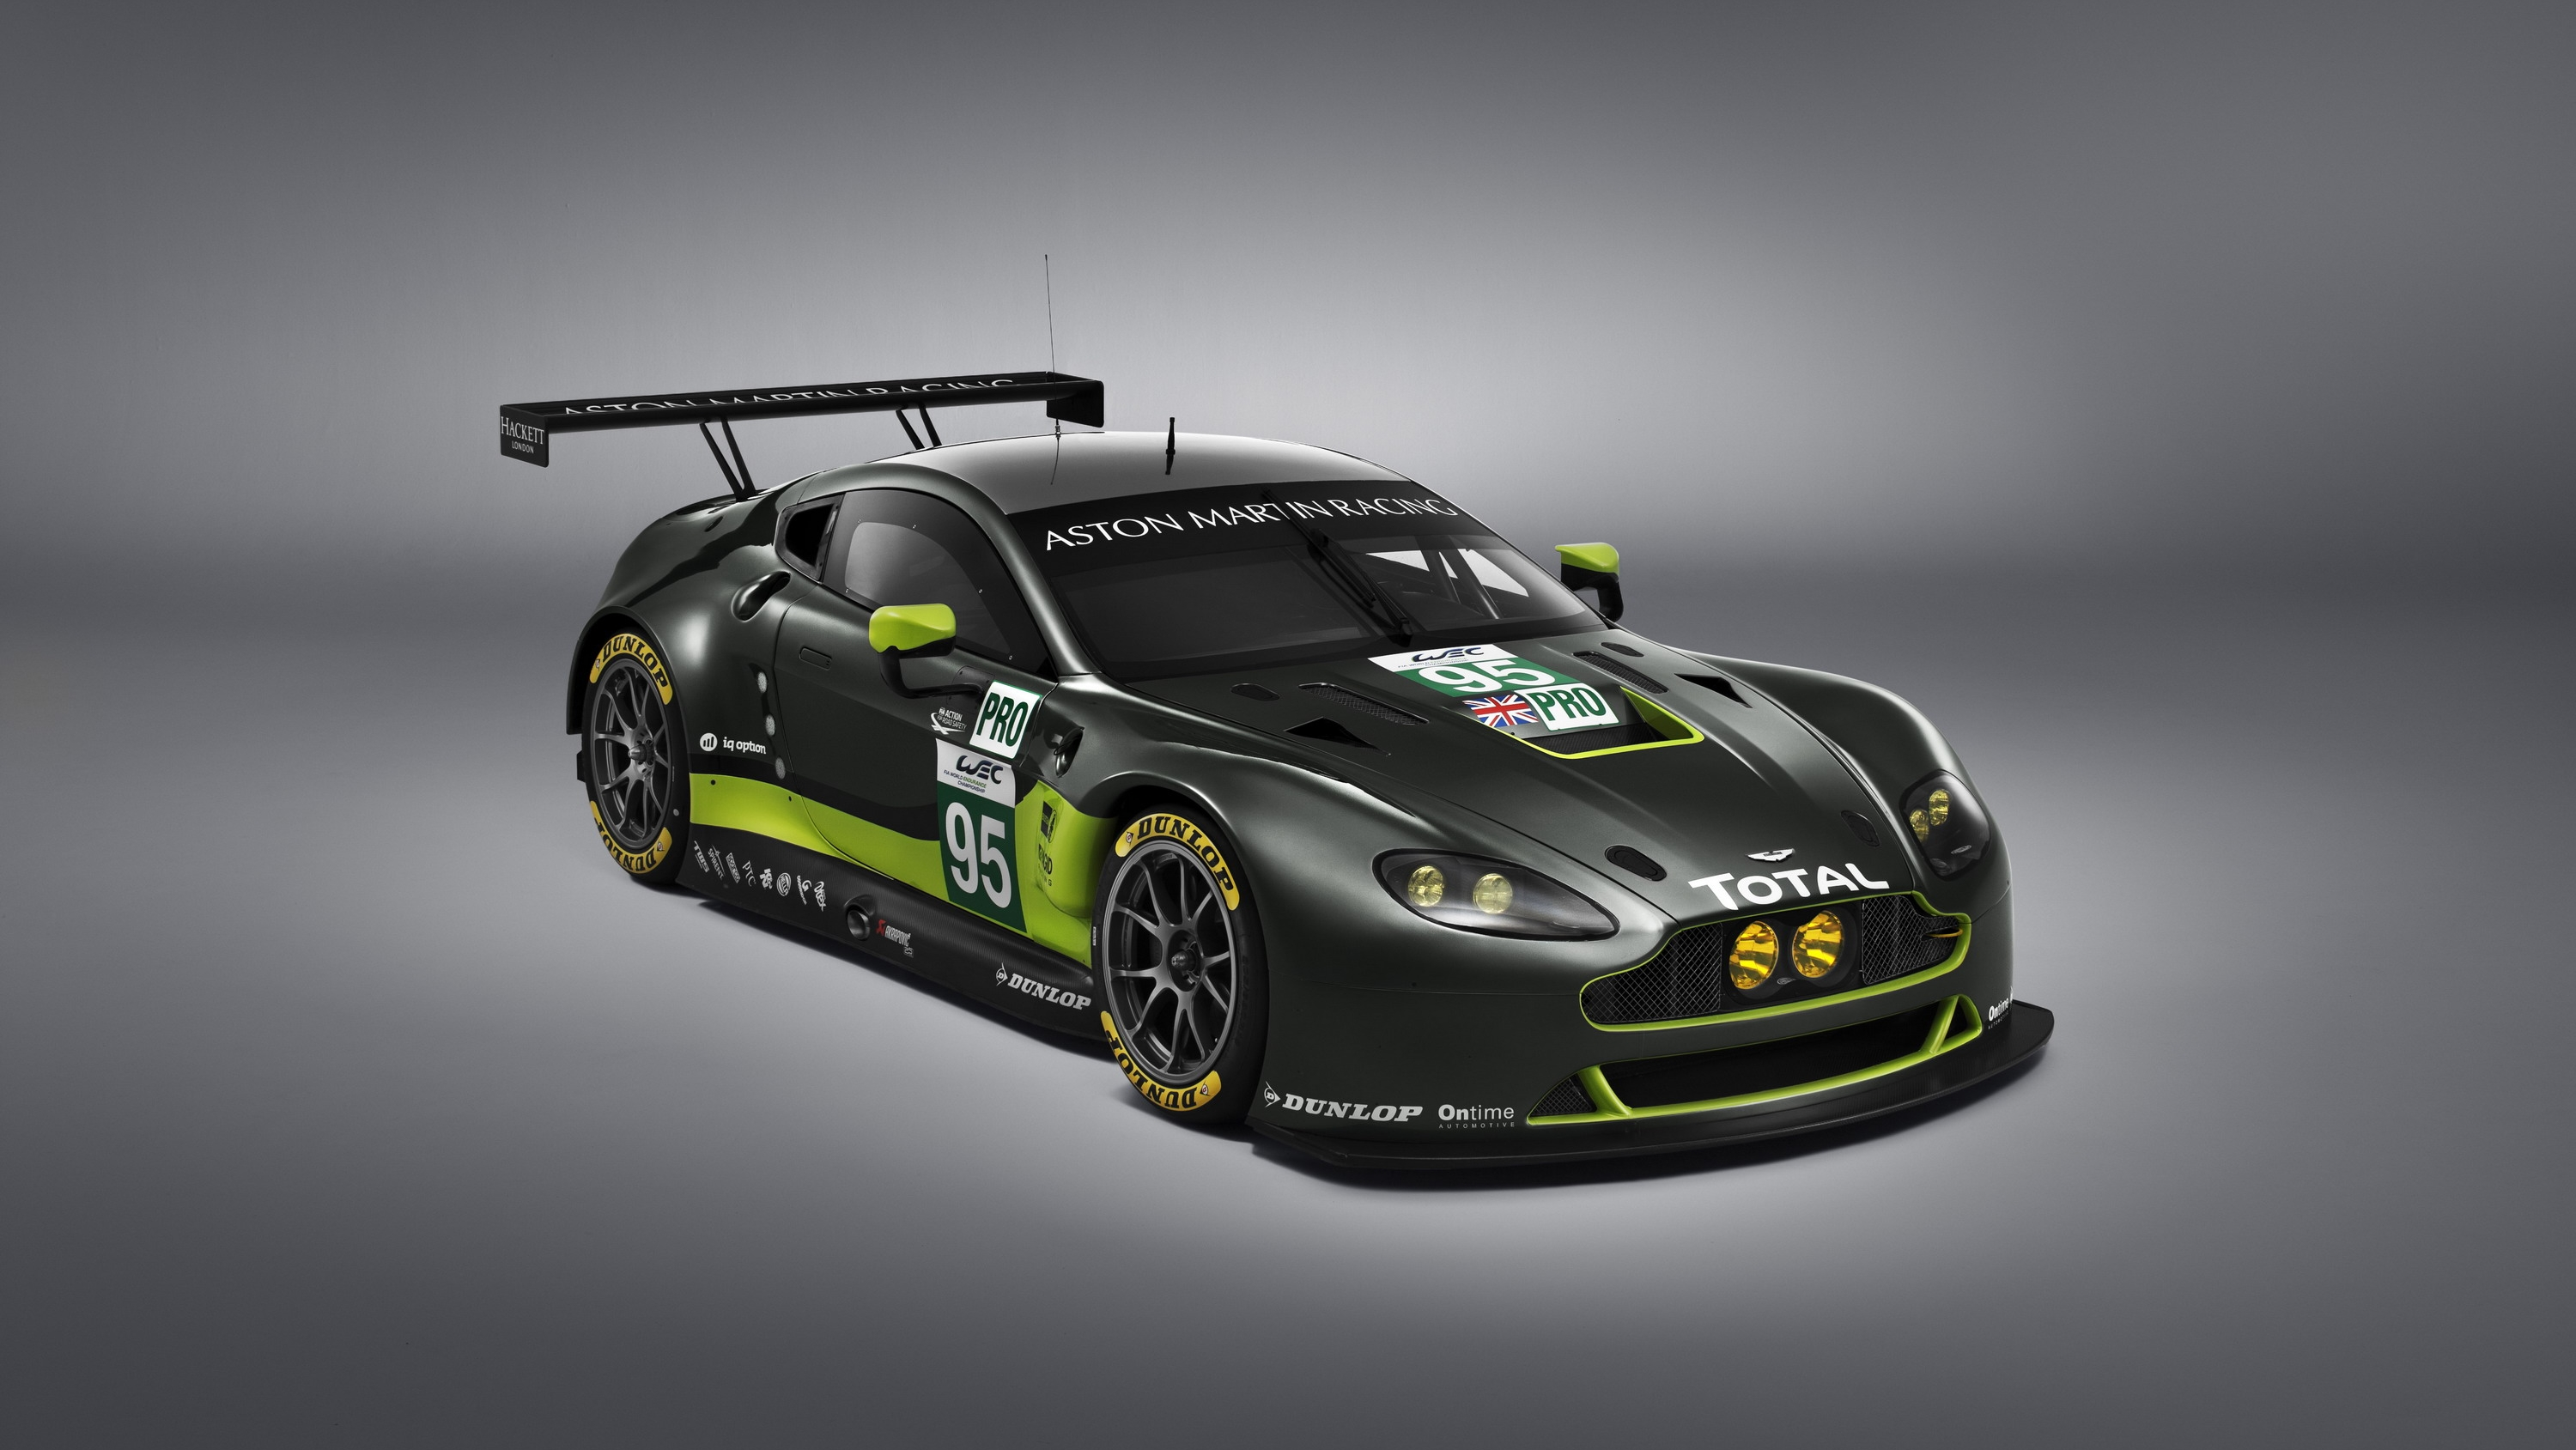 Exceptionnel In What Seems Like A Repeat Of History, Aston Martin Racing Has Announced A  New Aston Martin GTE Race Car, As Well As Its Intentions To Win This Yearu0027s  ...